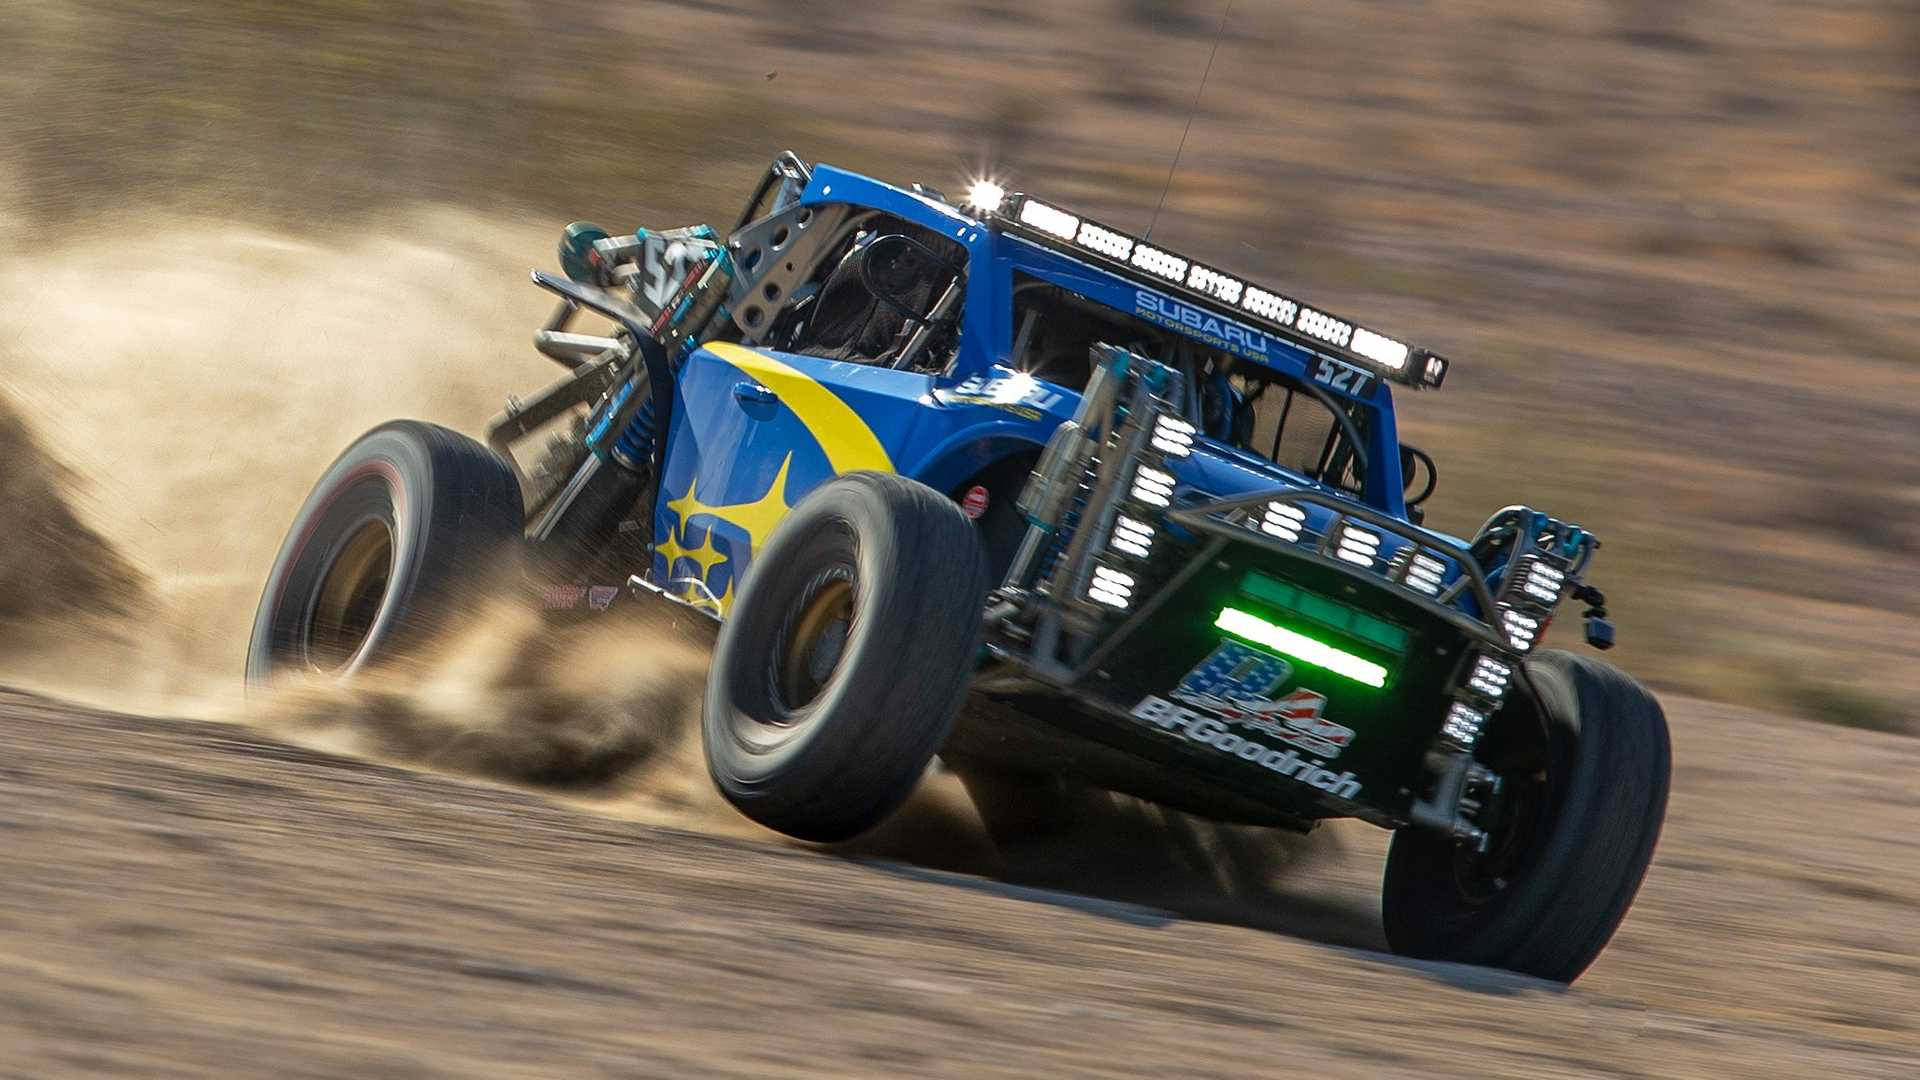 subaru-crosstrek-desert-racer-looks-ready-to-beat-baja_3